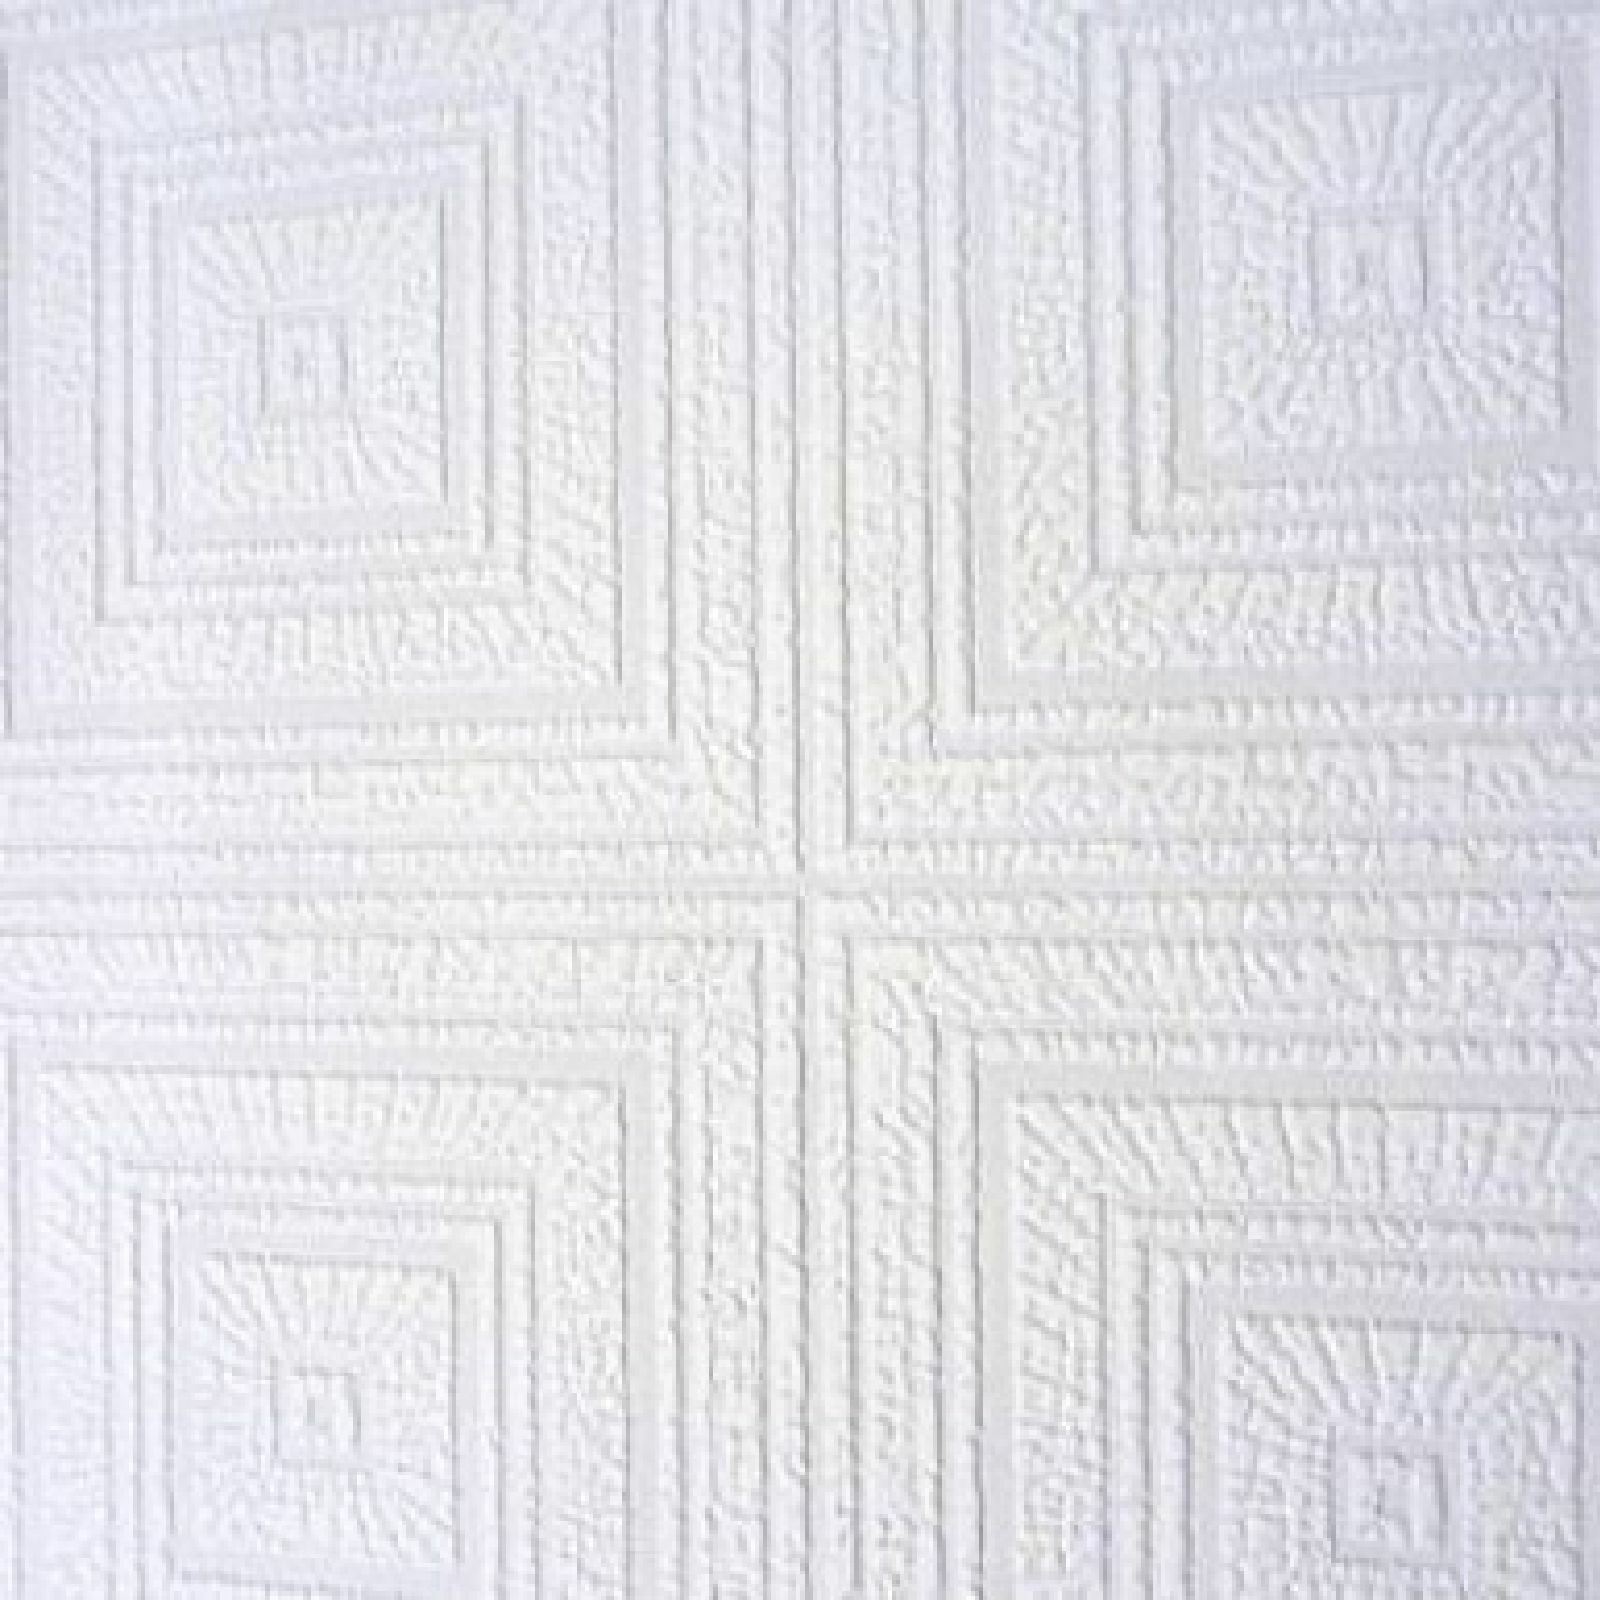 White Blown Vinyl Wallpaper Embossed Textured Patterned